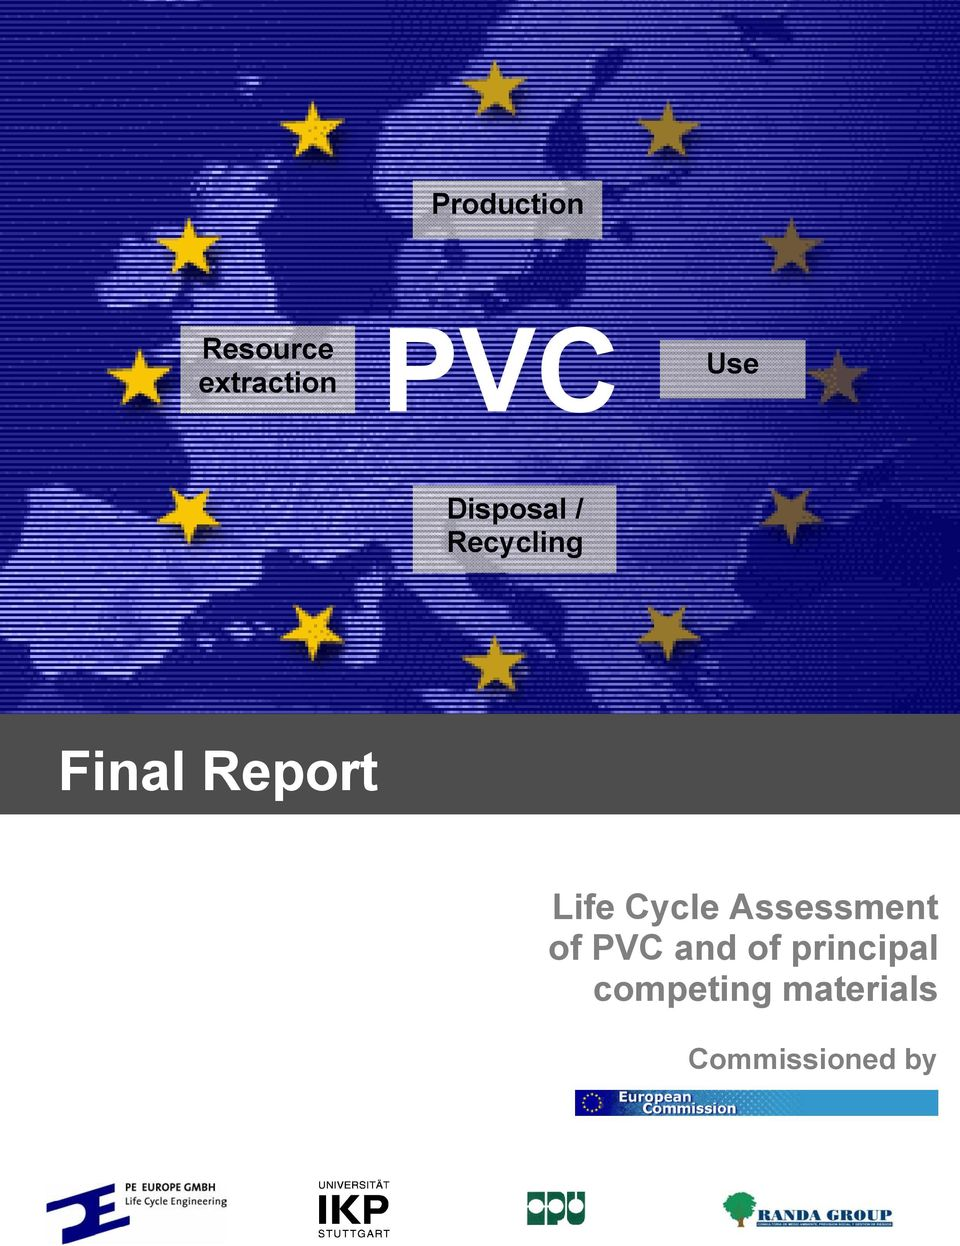 Cycle Assessment of PVC and of